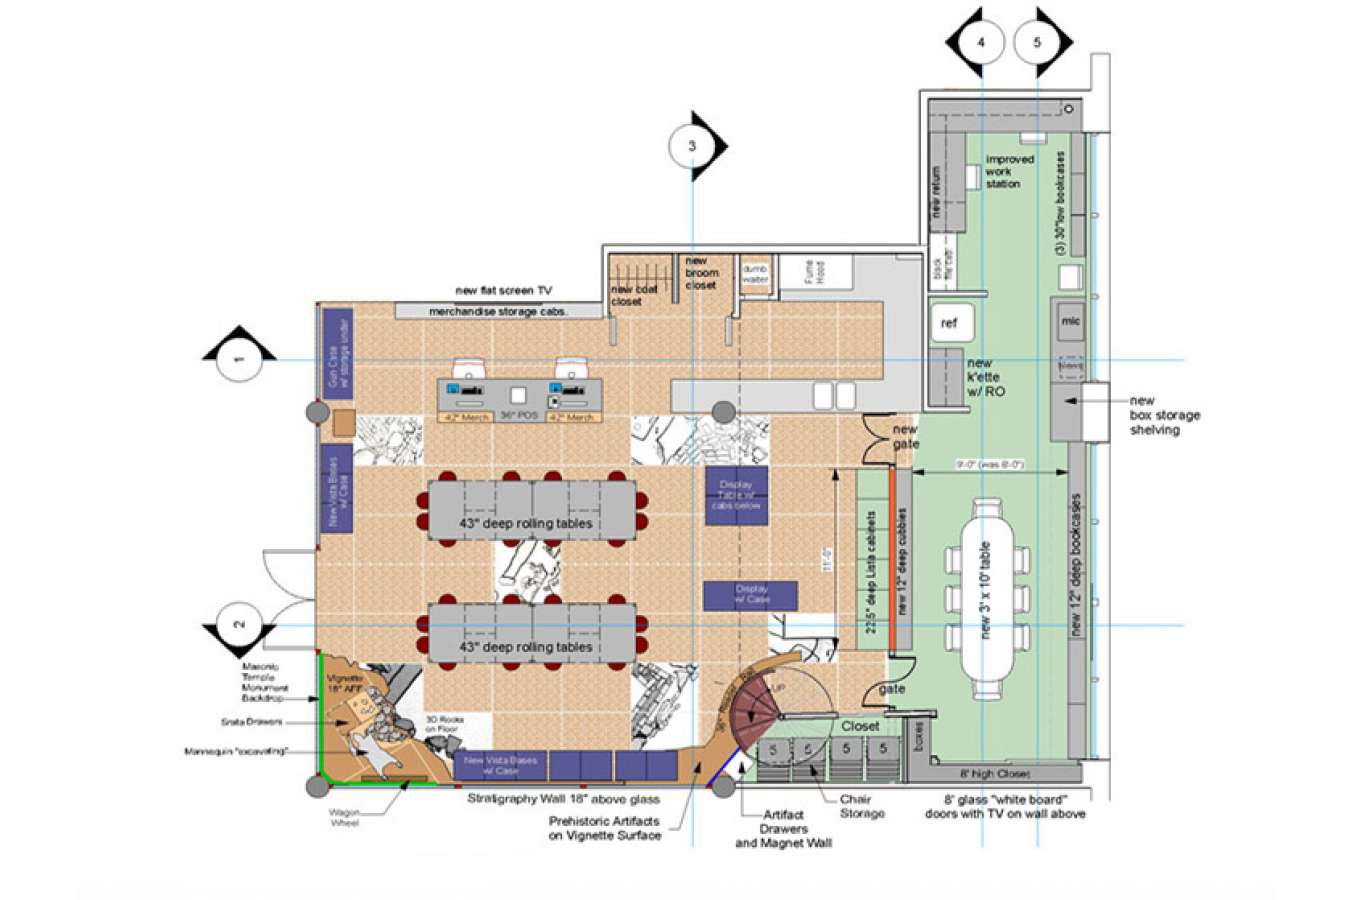 1 CAAM 2FloorPlanFinal.jpg : Archeological site images are inset into carpet for experiential teaching